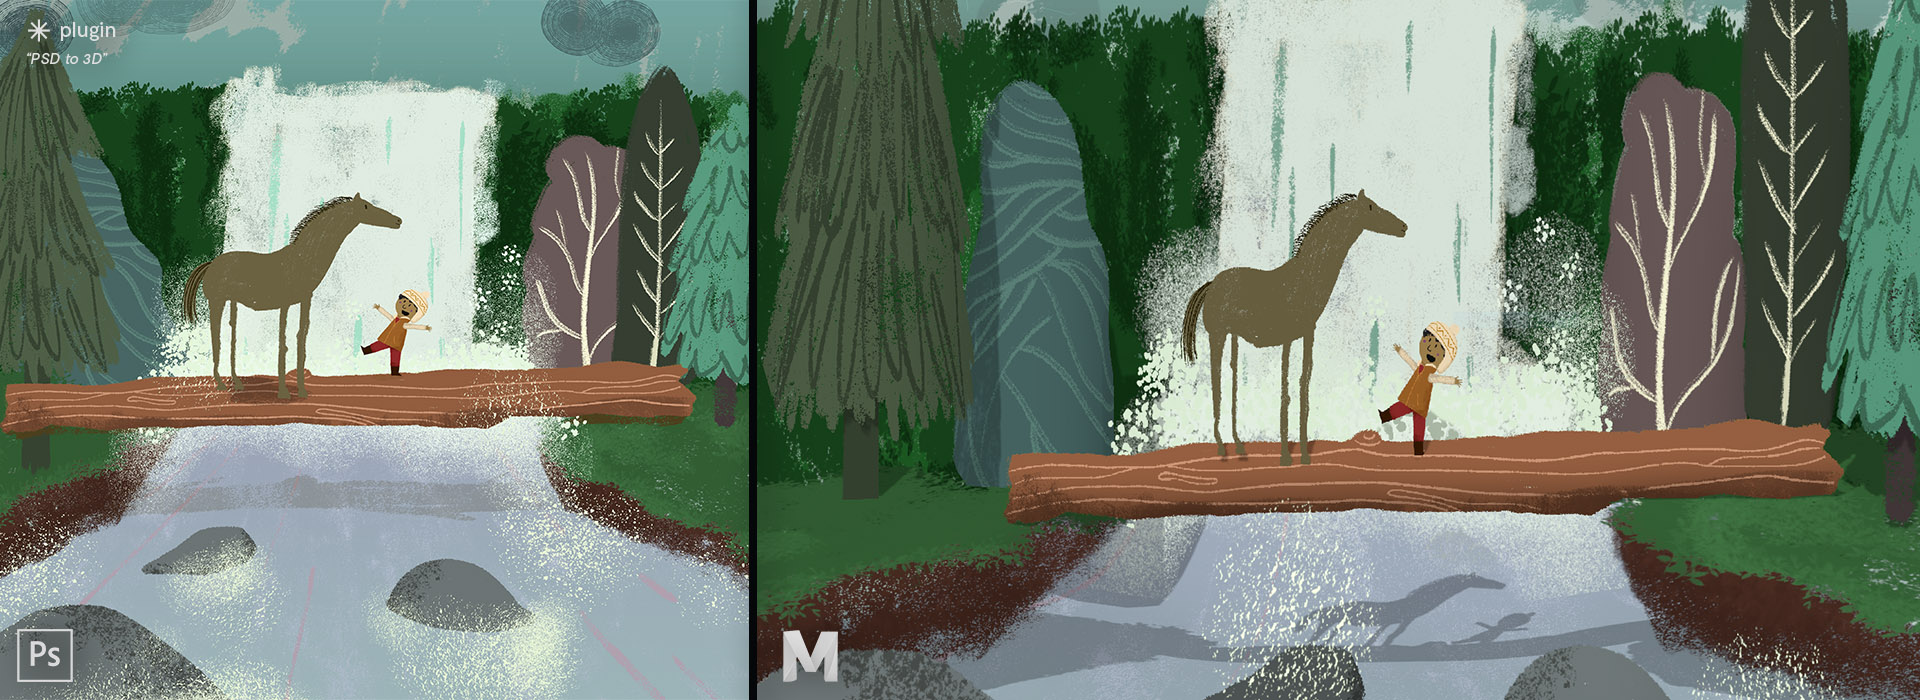 New Tool Creates 3D Scenes Out of Photoshop Drawings - article